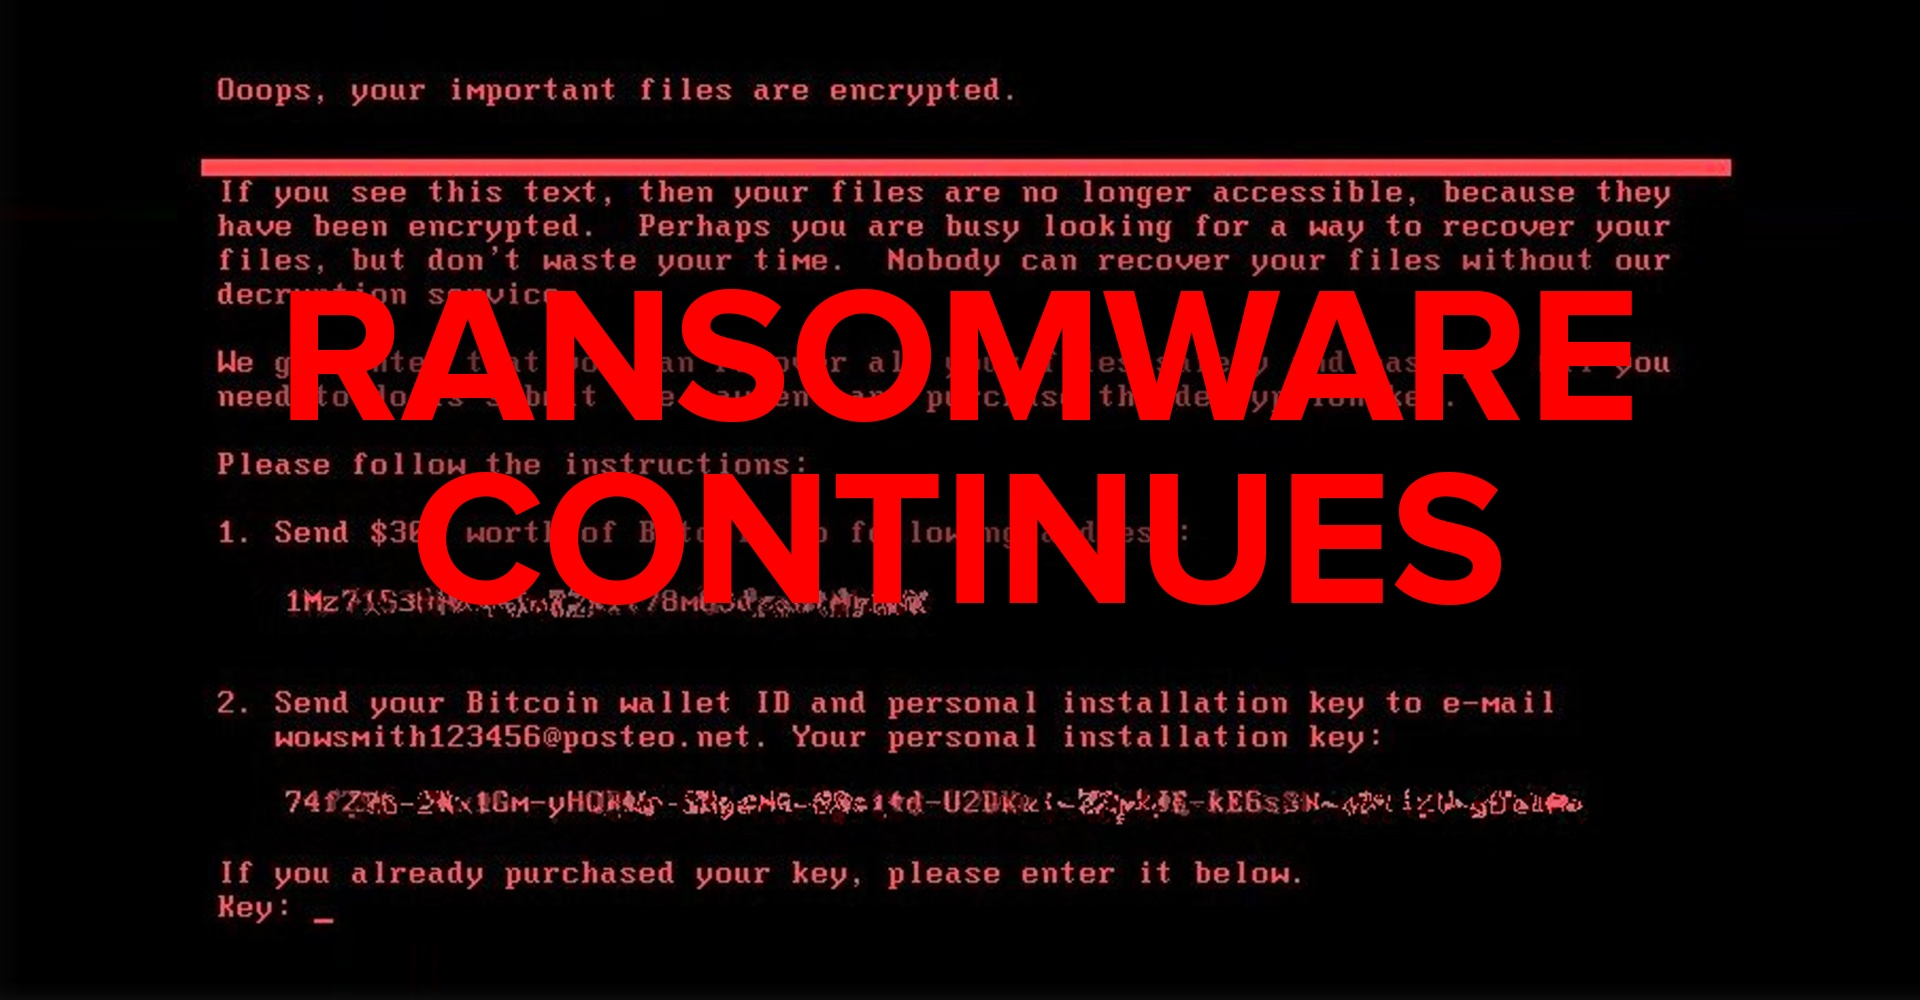 Petya-based ransomware using EternalBlue to infect computers around the world